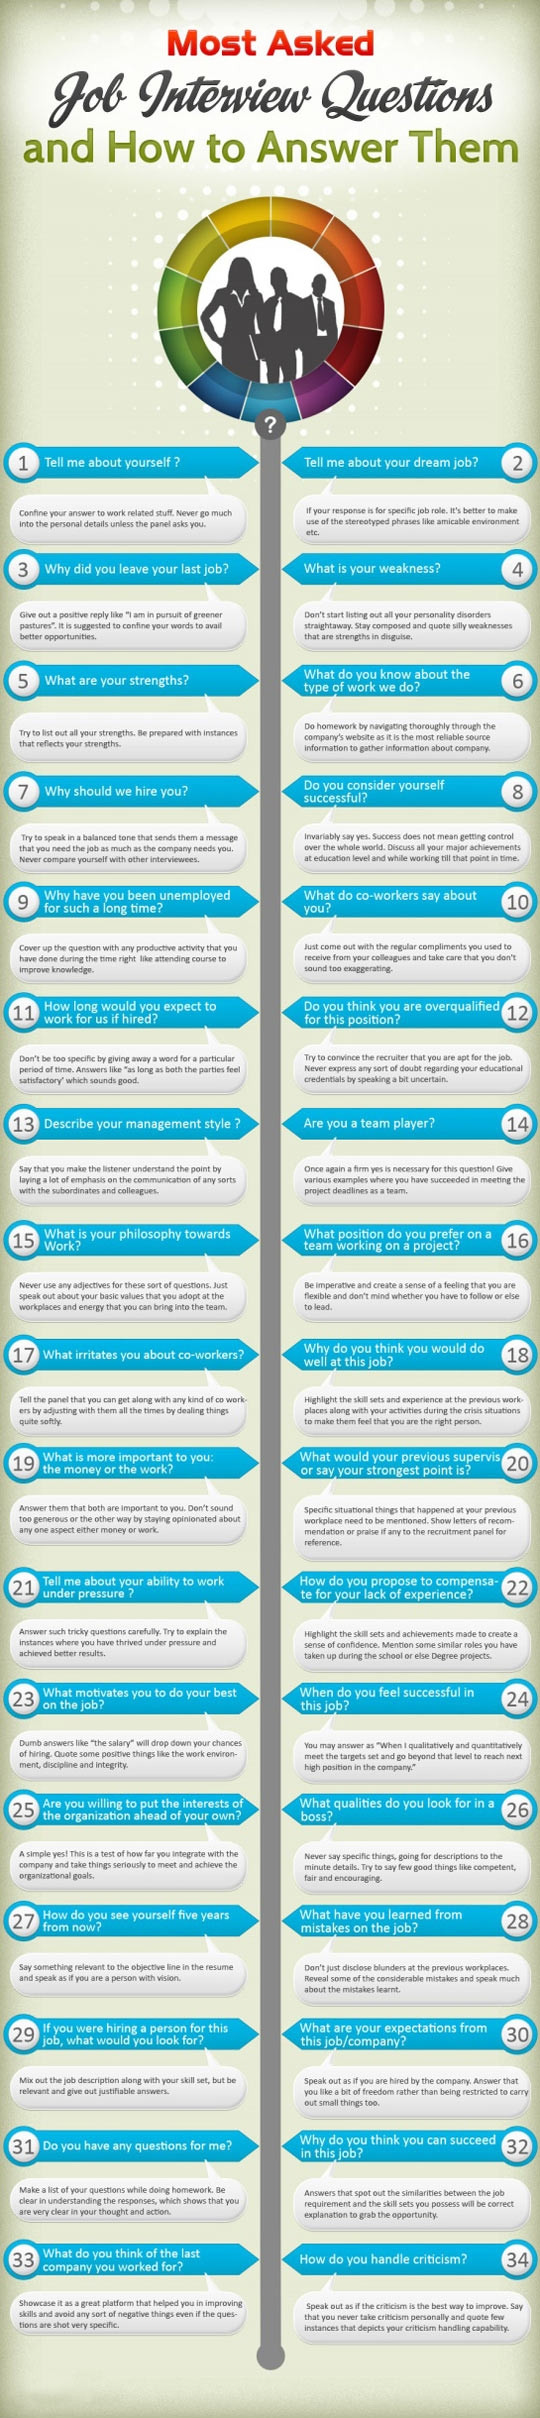 most asked job internview questions infographic